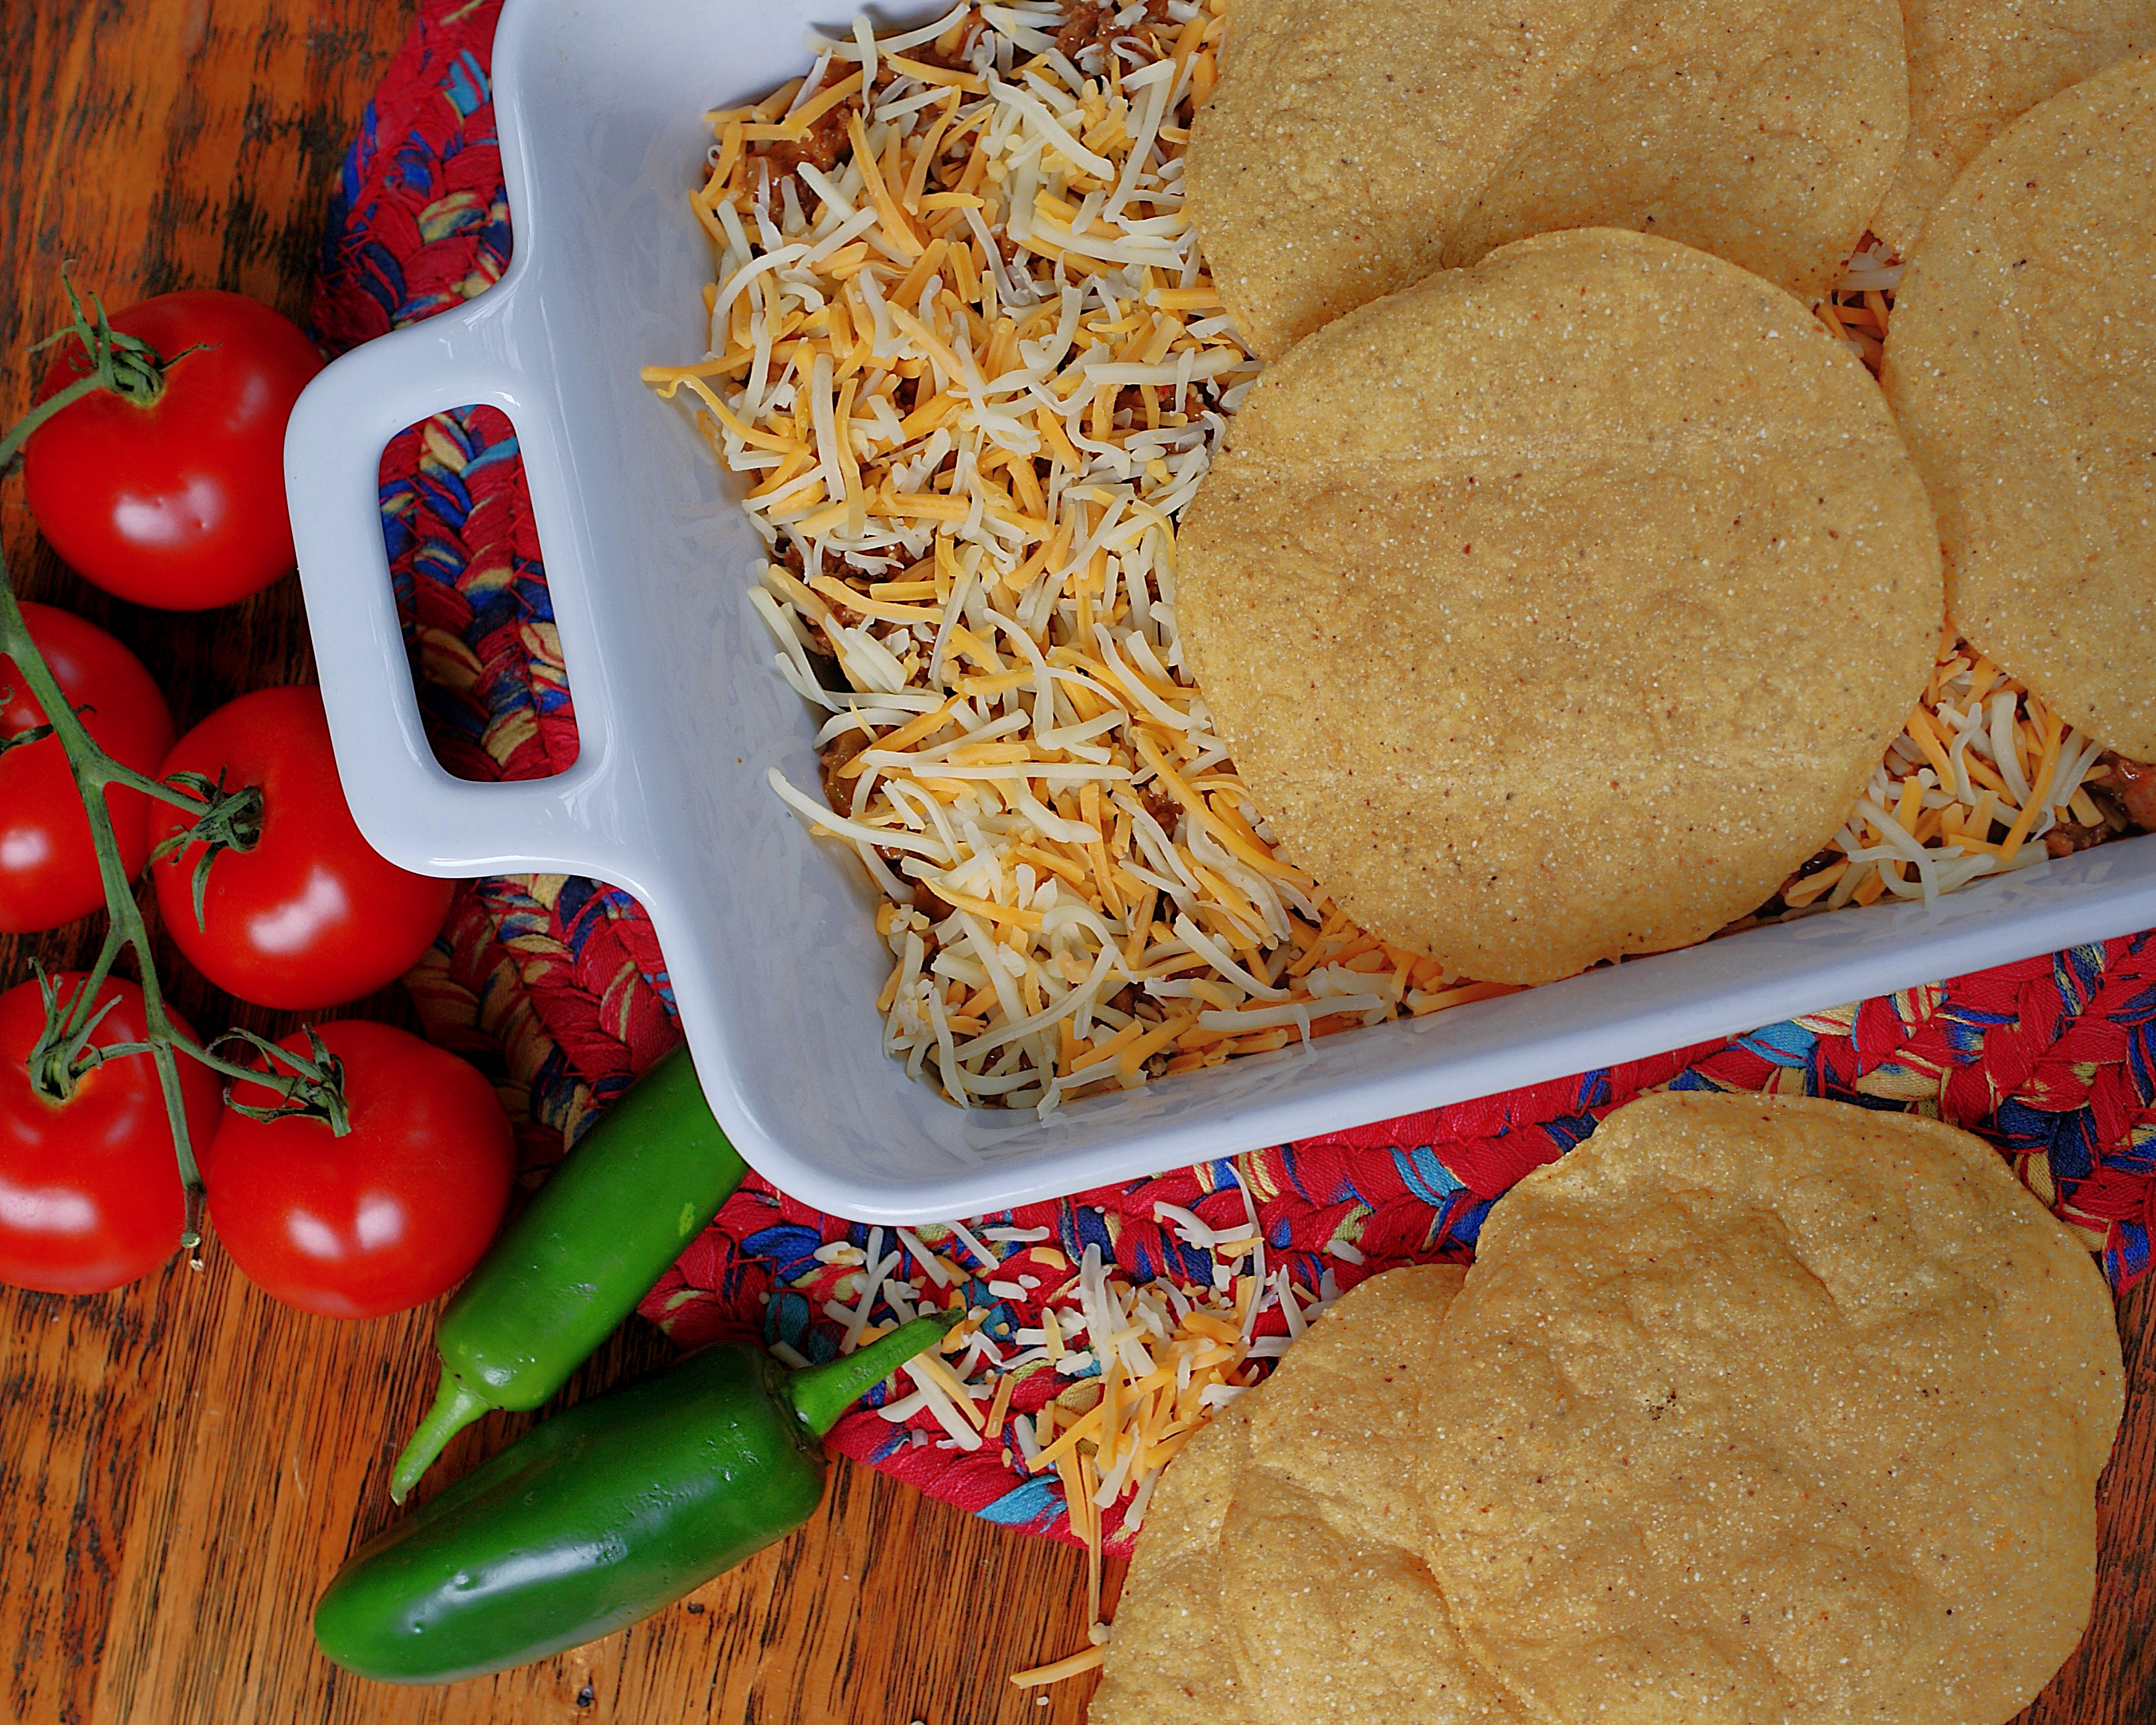 Layering beef, cheese and tostadas in a casserole dish.